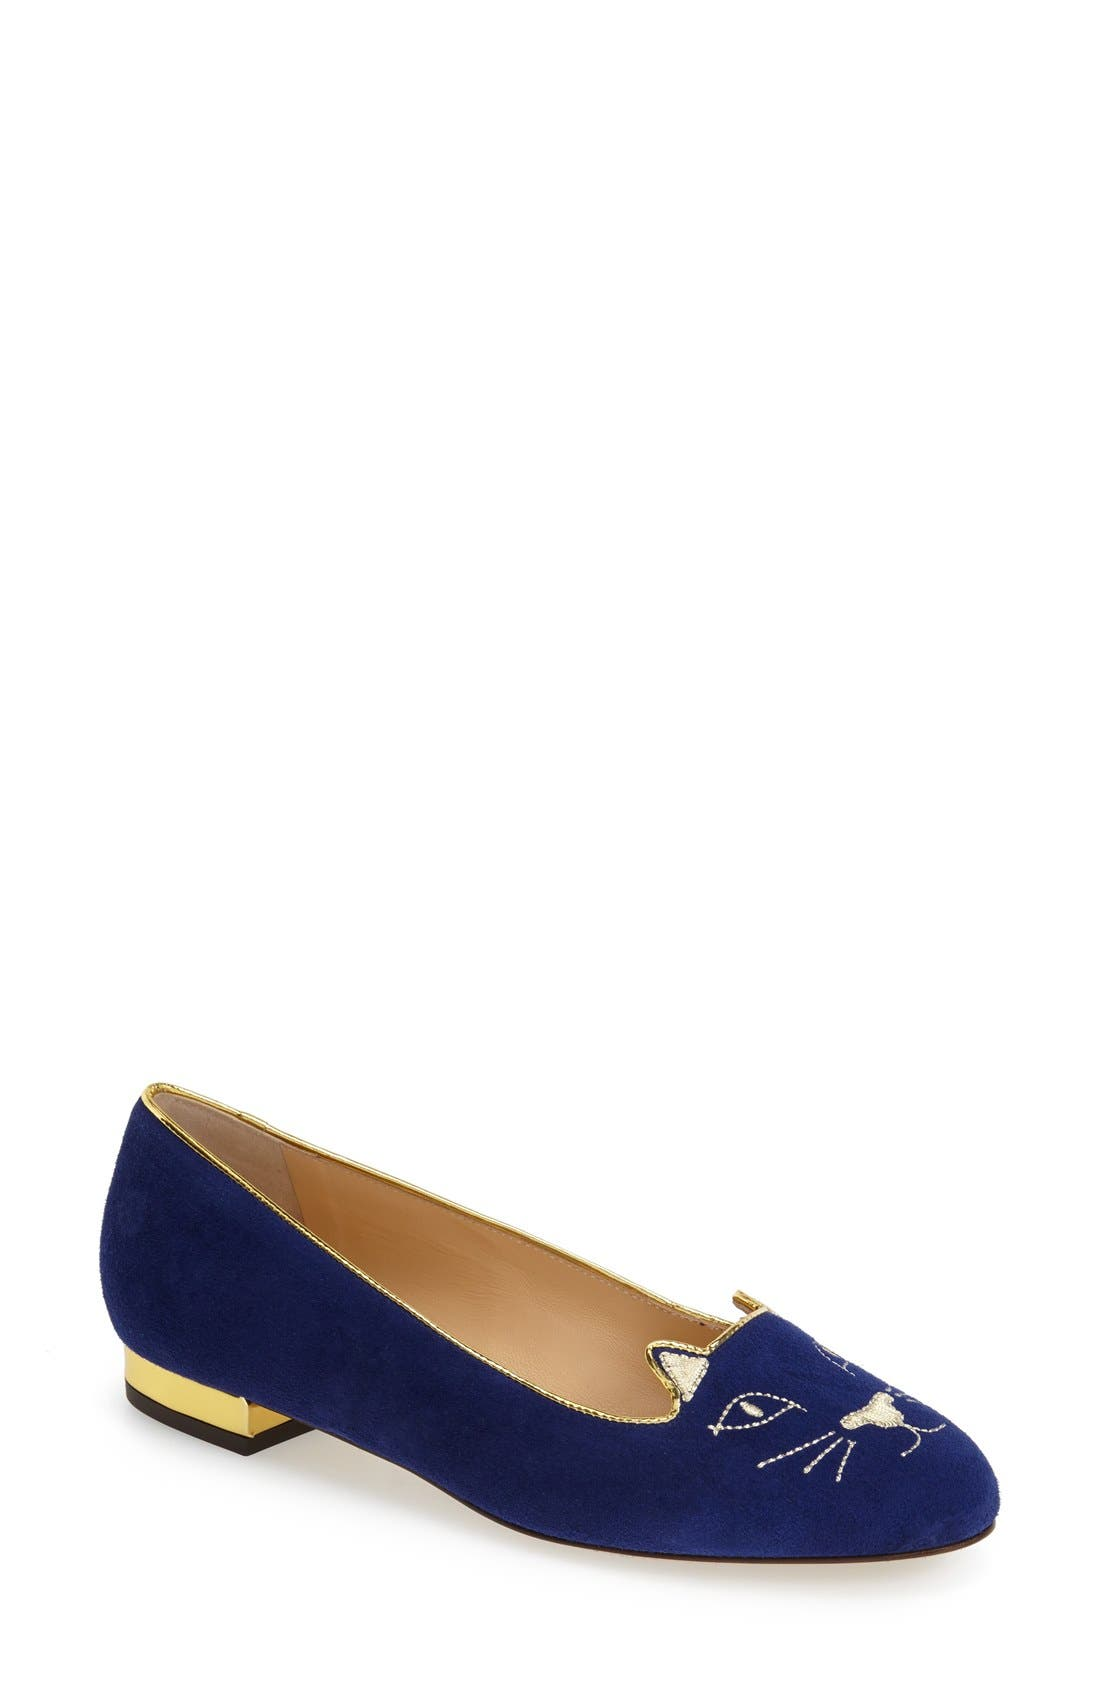 Main Image - Charlotte Olympia 'Kitty' Suede Flat (Nordstrom Exclusive)